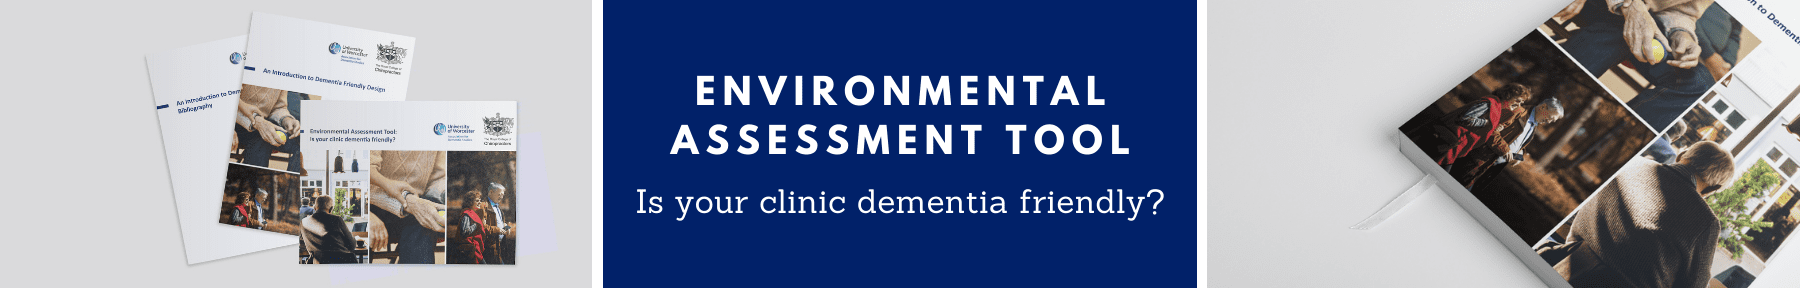 dementia friendly, assessment tool